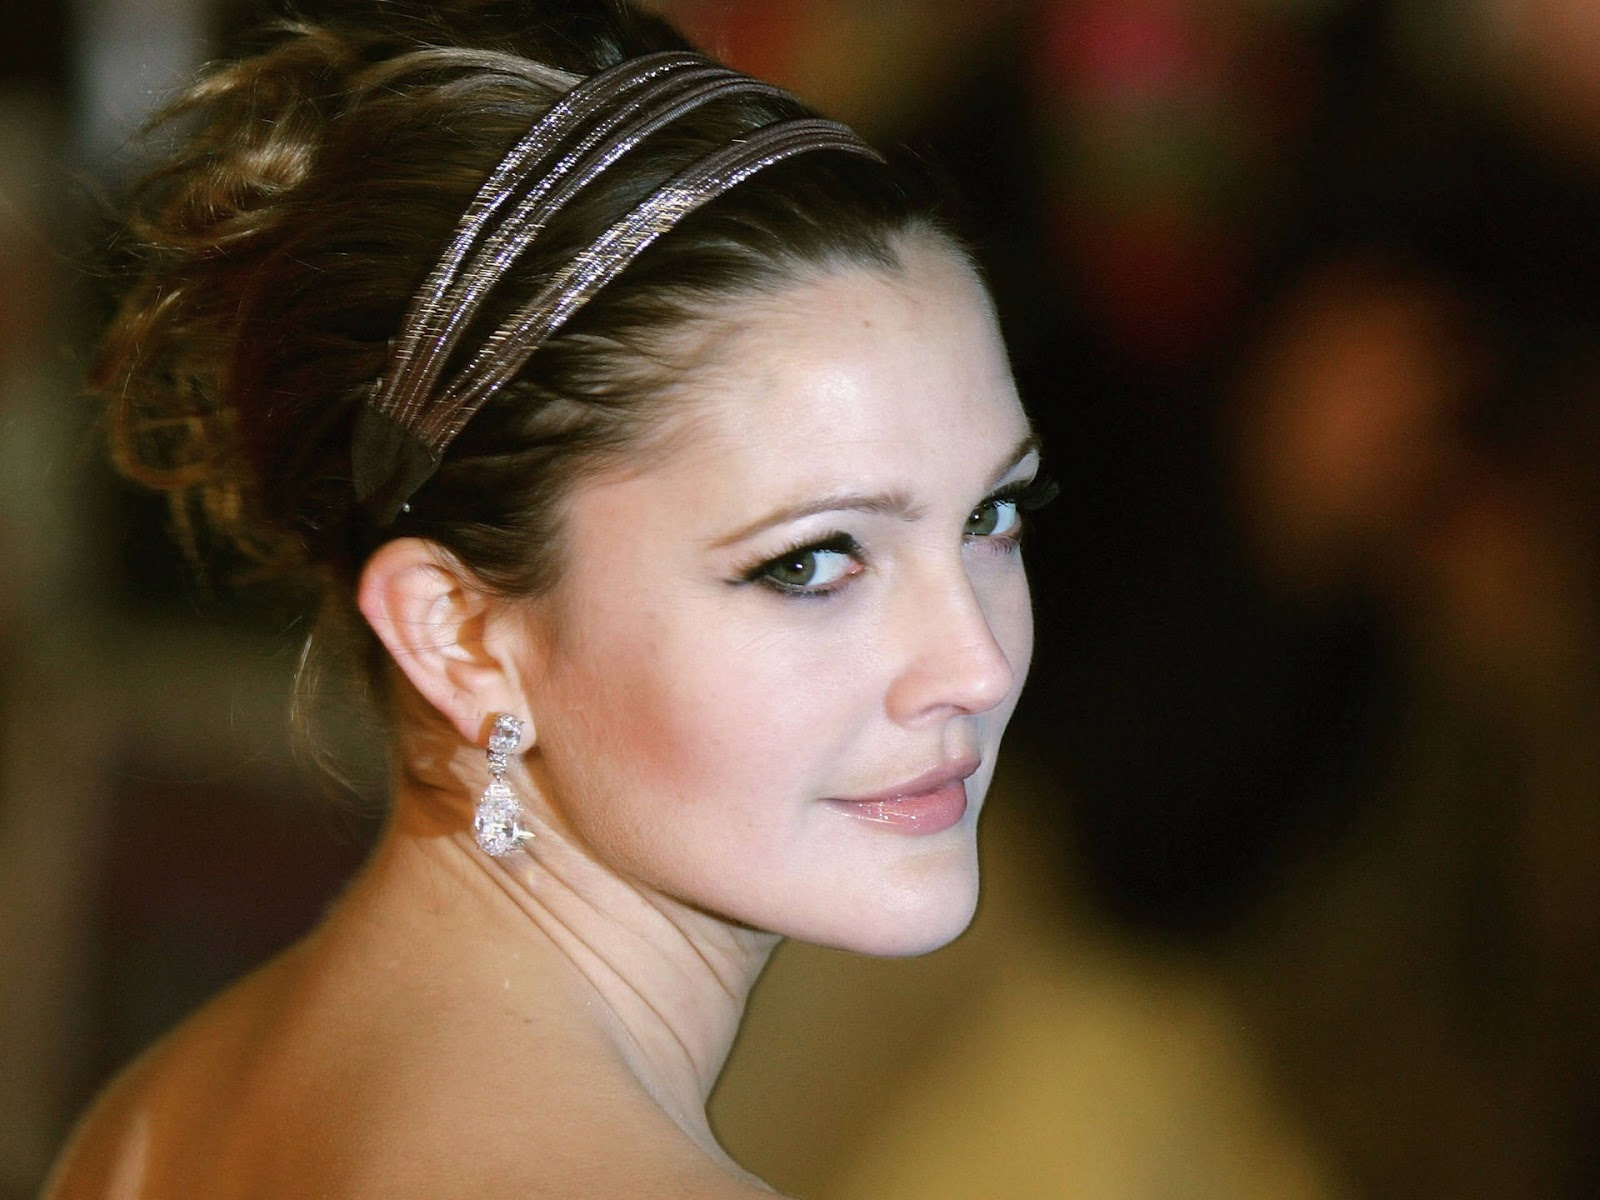 drew barrymore has a full name drew blyth barrymore birthday 22 ...